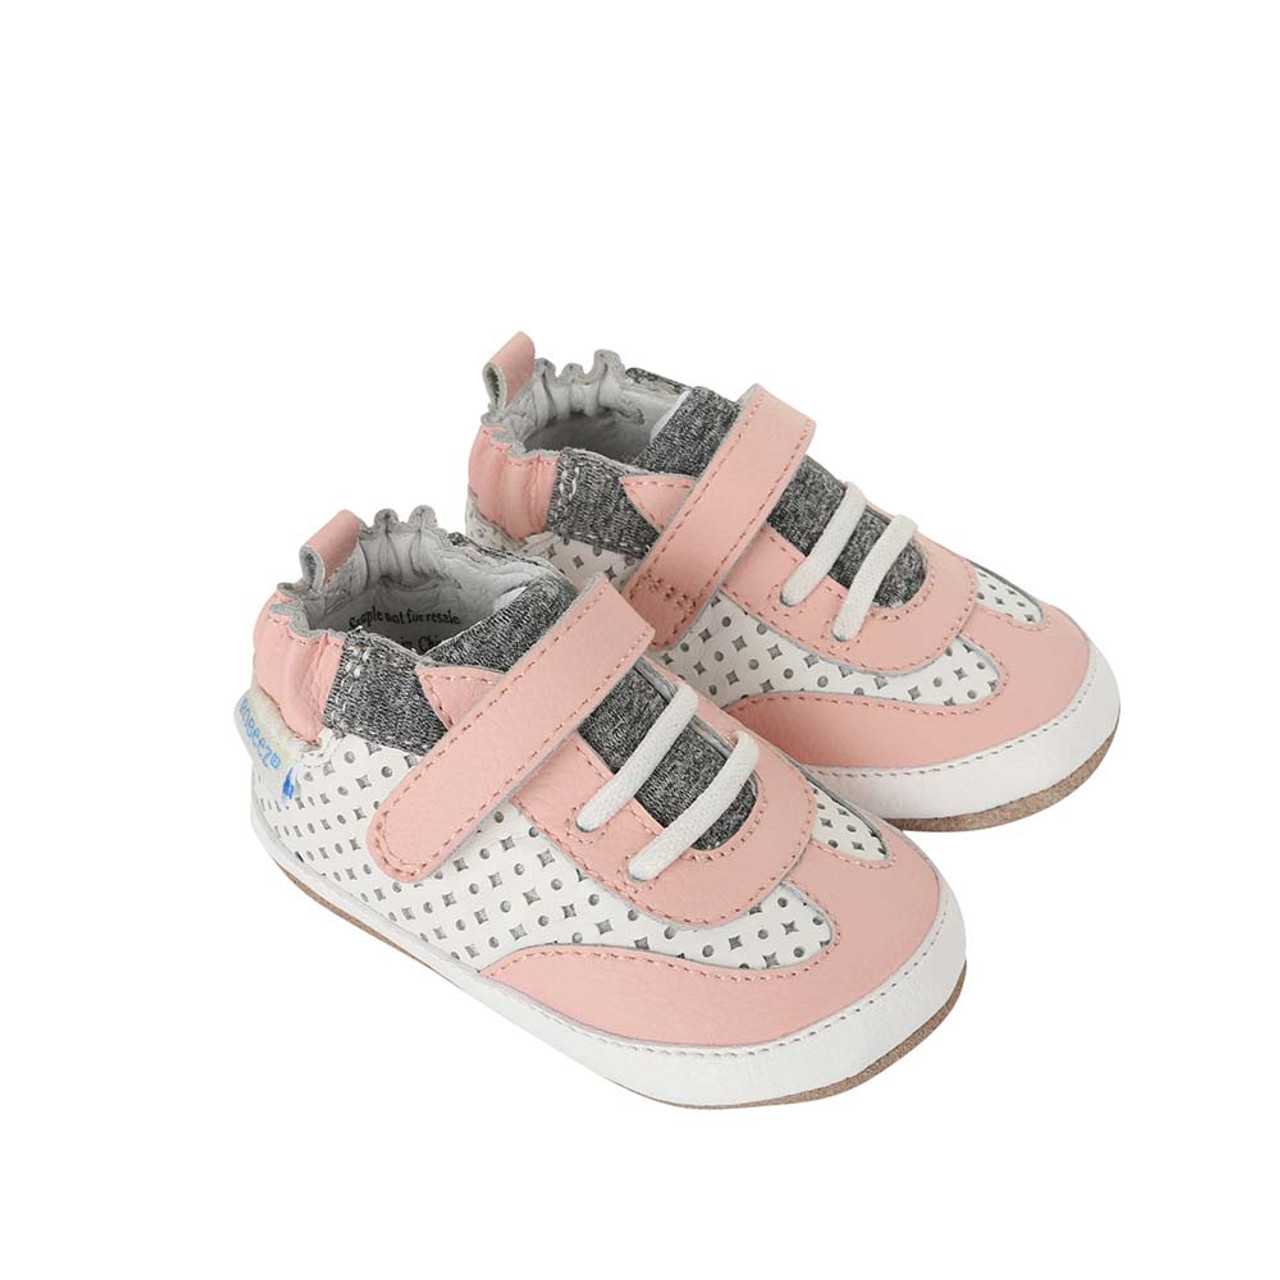 5d471f02 Side view of Katie's Kicks Baby Shoes, a children's athletic shoe for baby,  infant